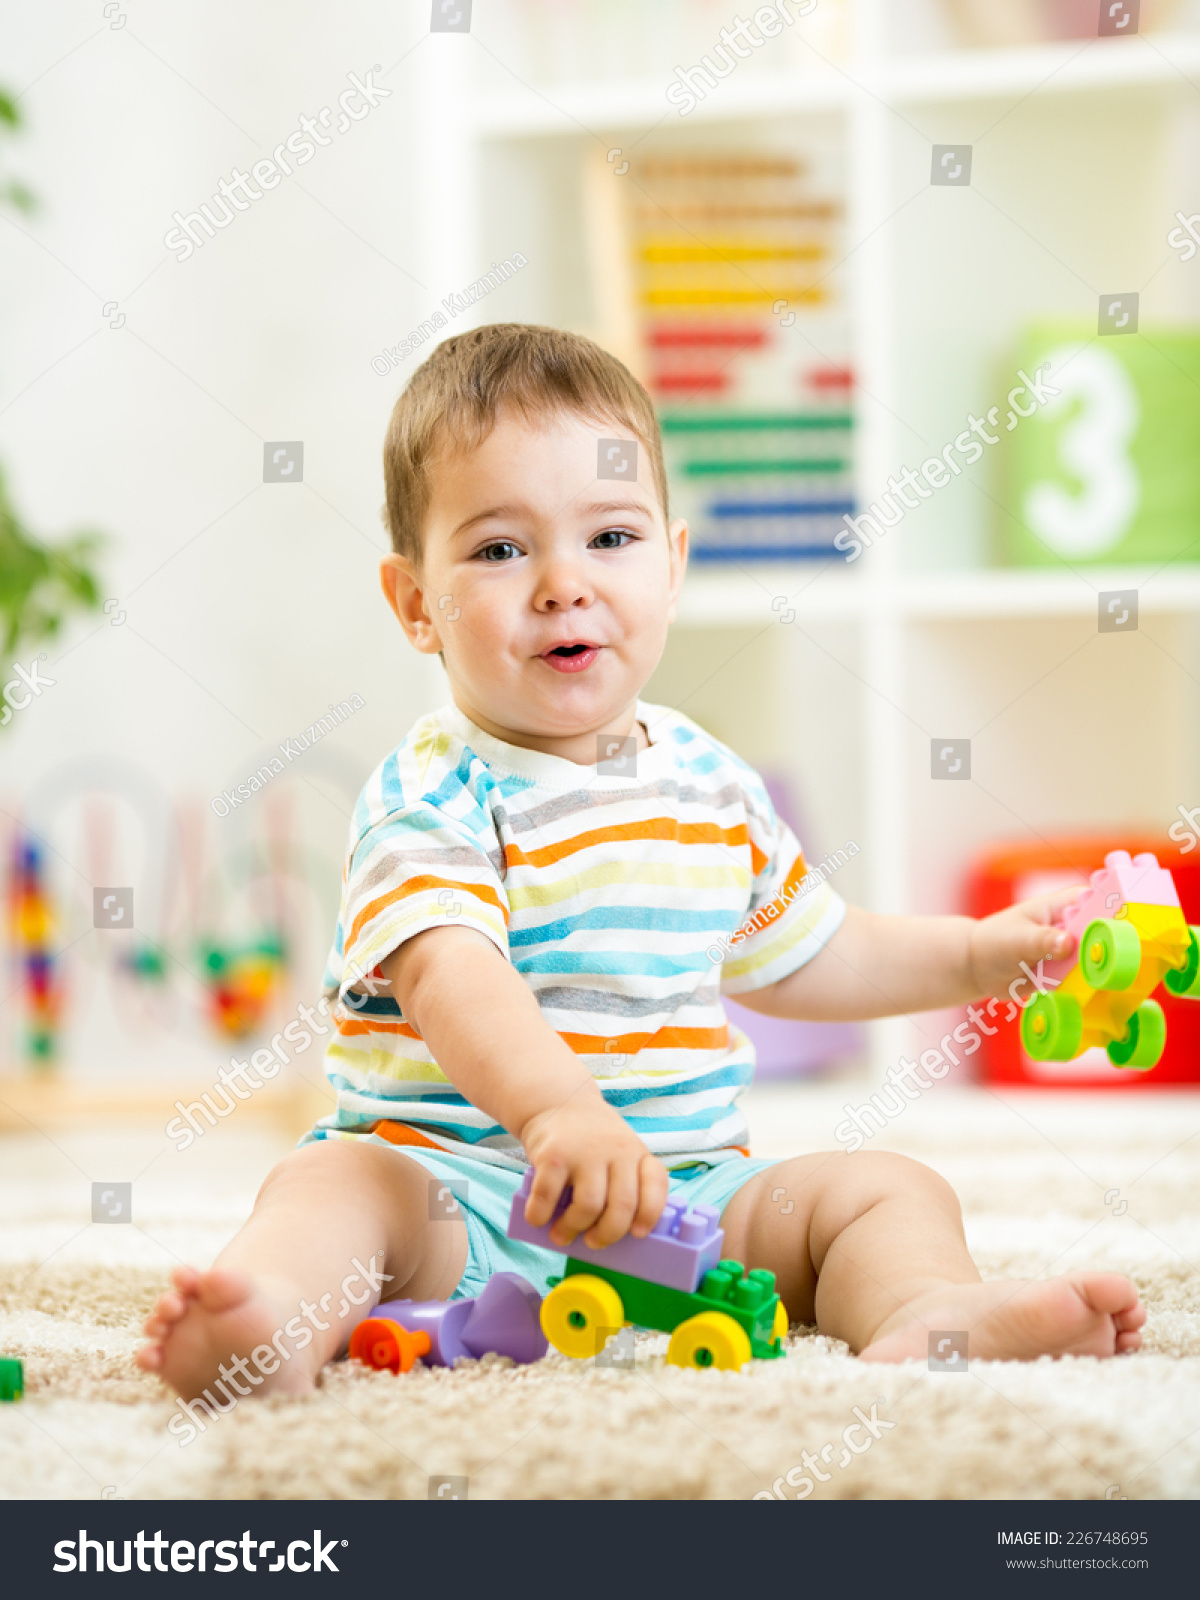 Child Boy Playing Building Blocks Home Stock